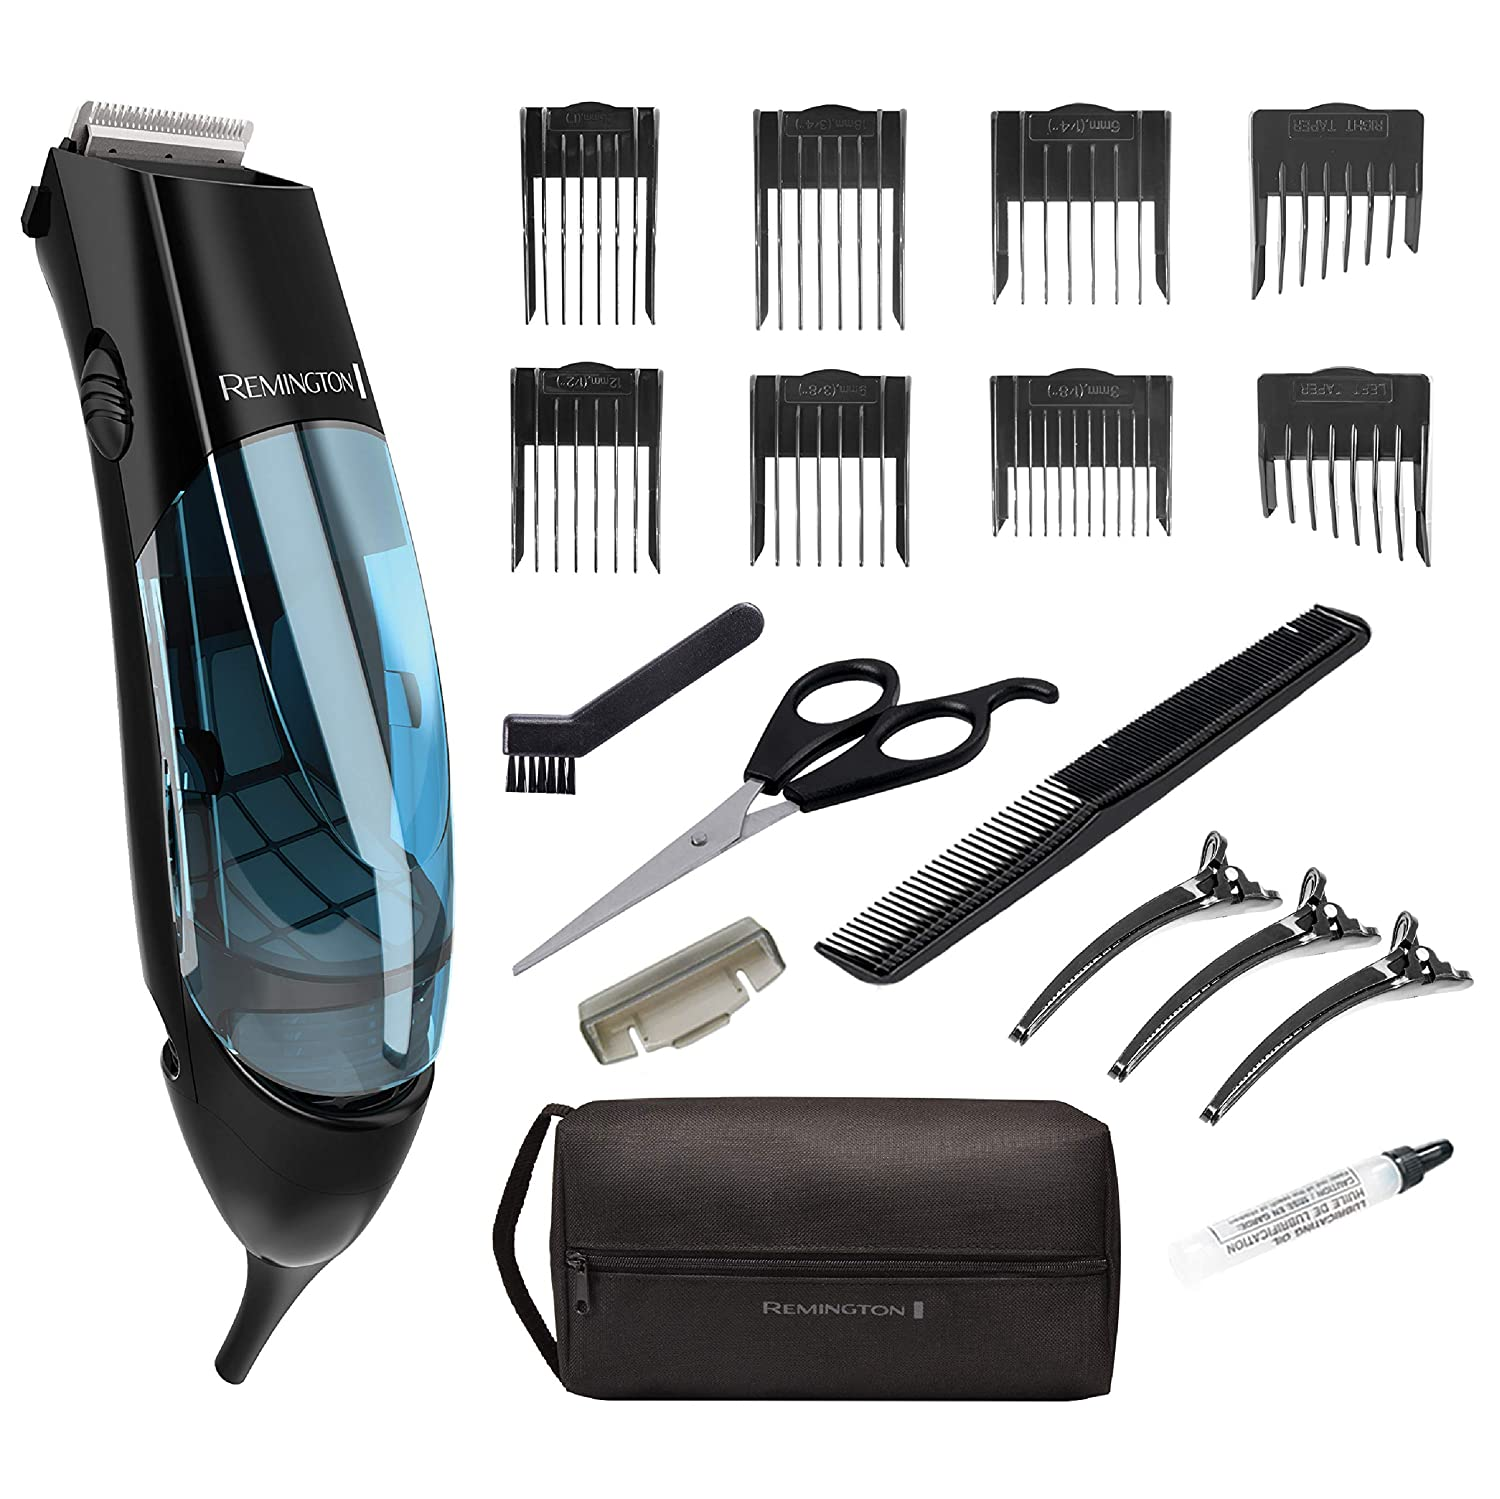 Remington HKVAC2000A Vacuum Haircut Kit, Vacuum Beard Trimmer, Hair Clippers for Men 18 pieces